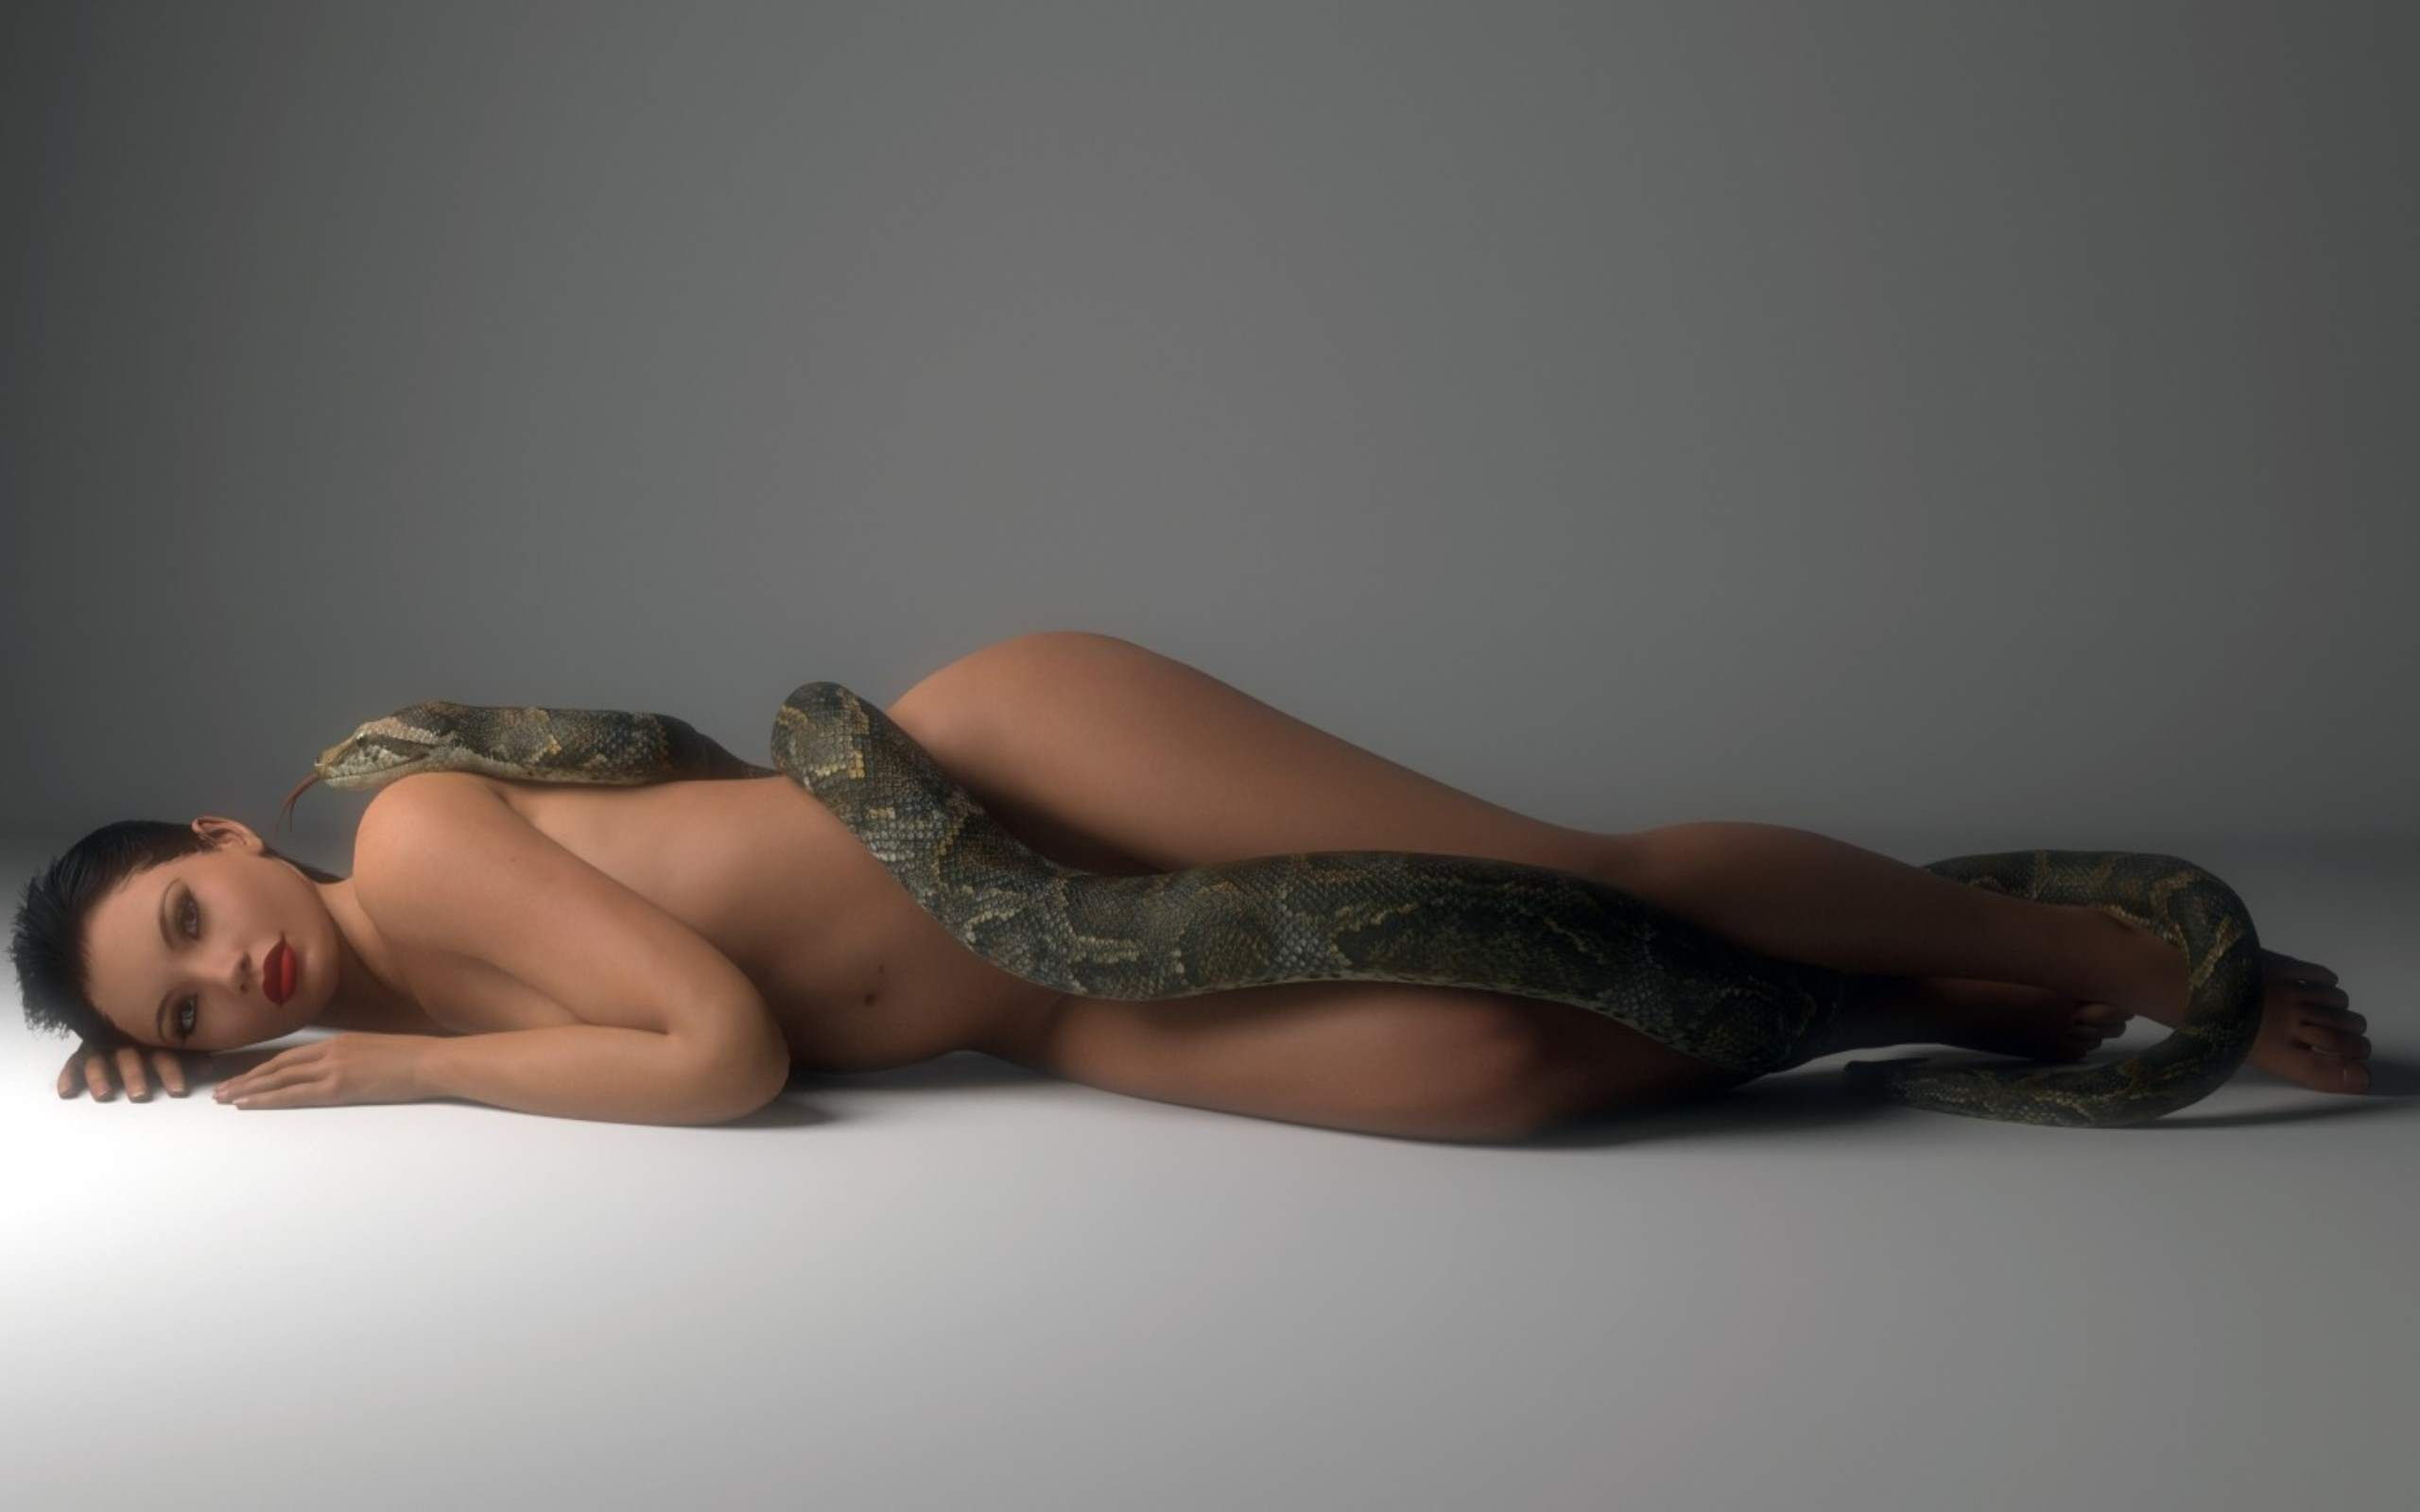 Assured, Naked and horny with snakes are